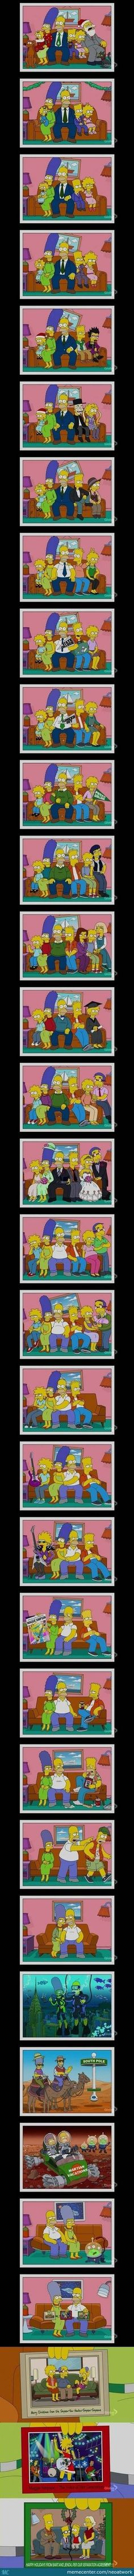 The Simpsons Evolution